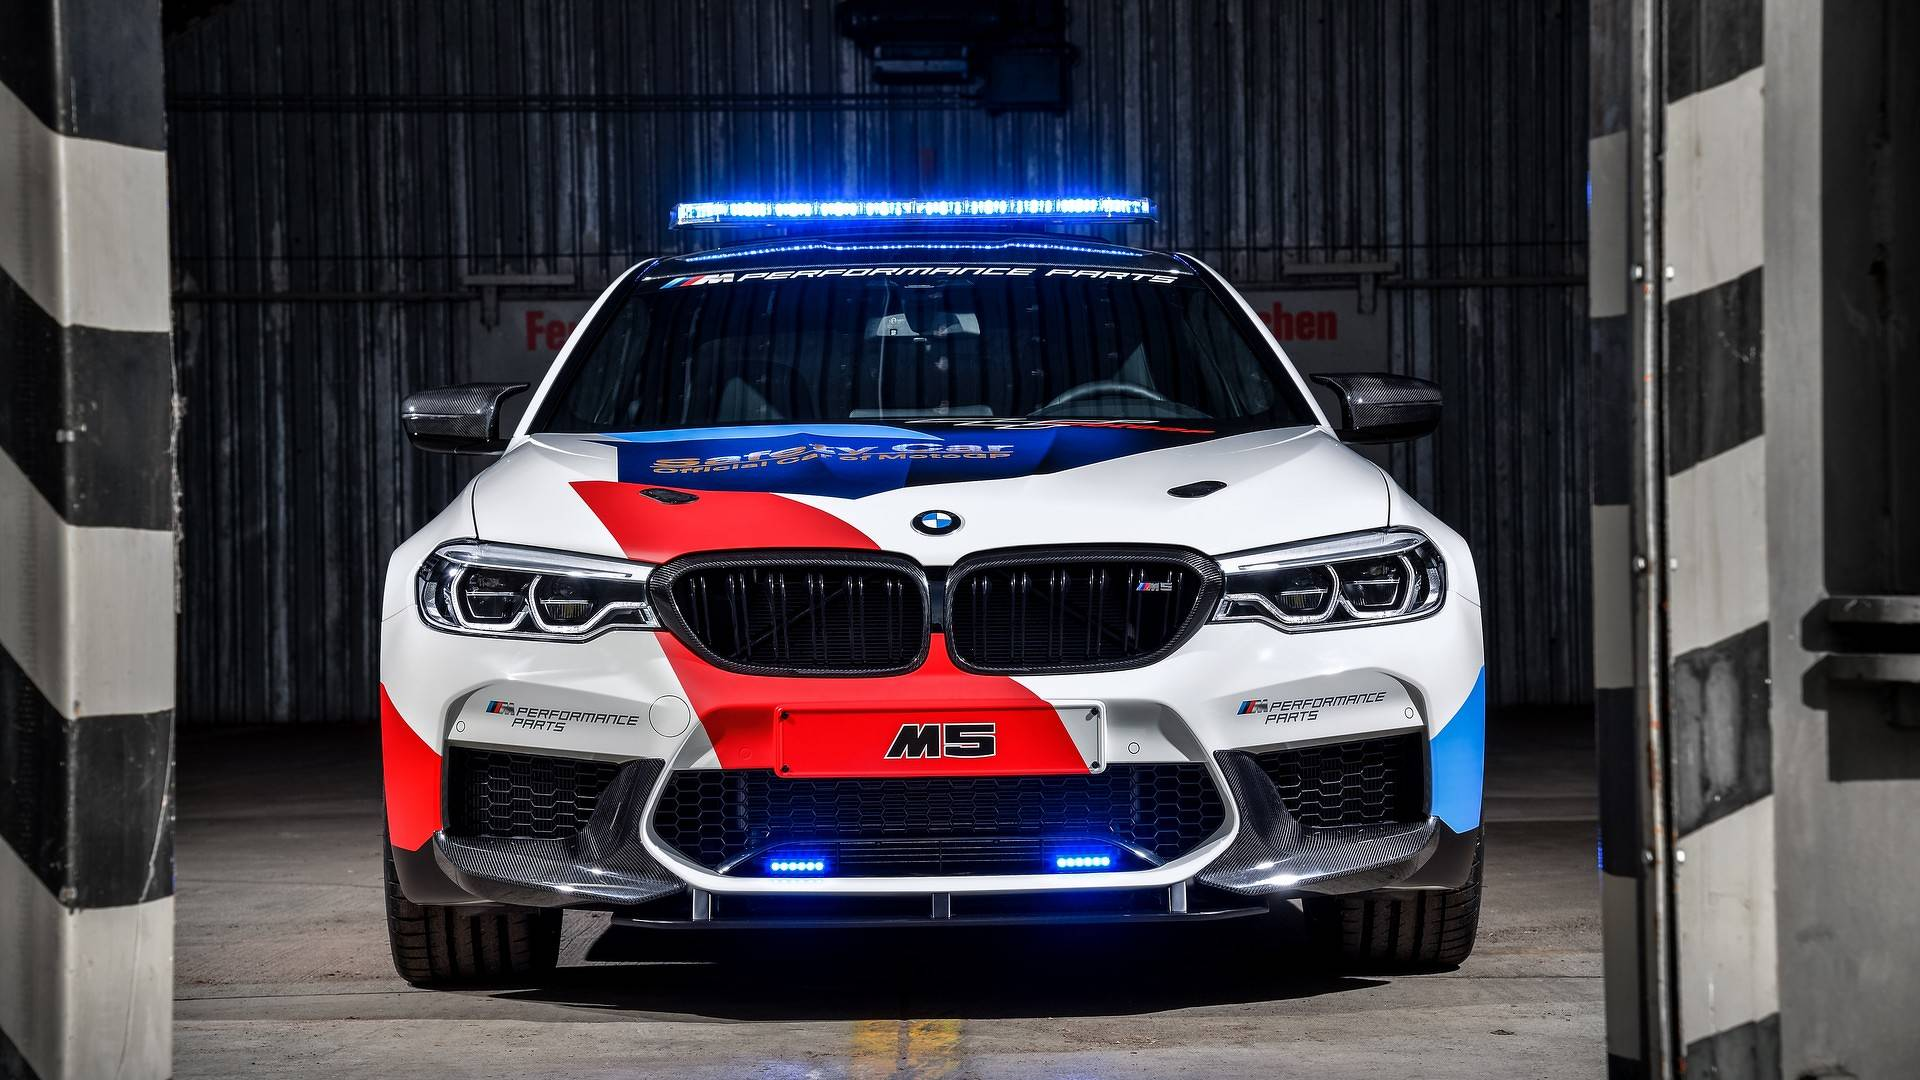 bmw-m5-motogp-safety-car (8)